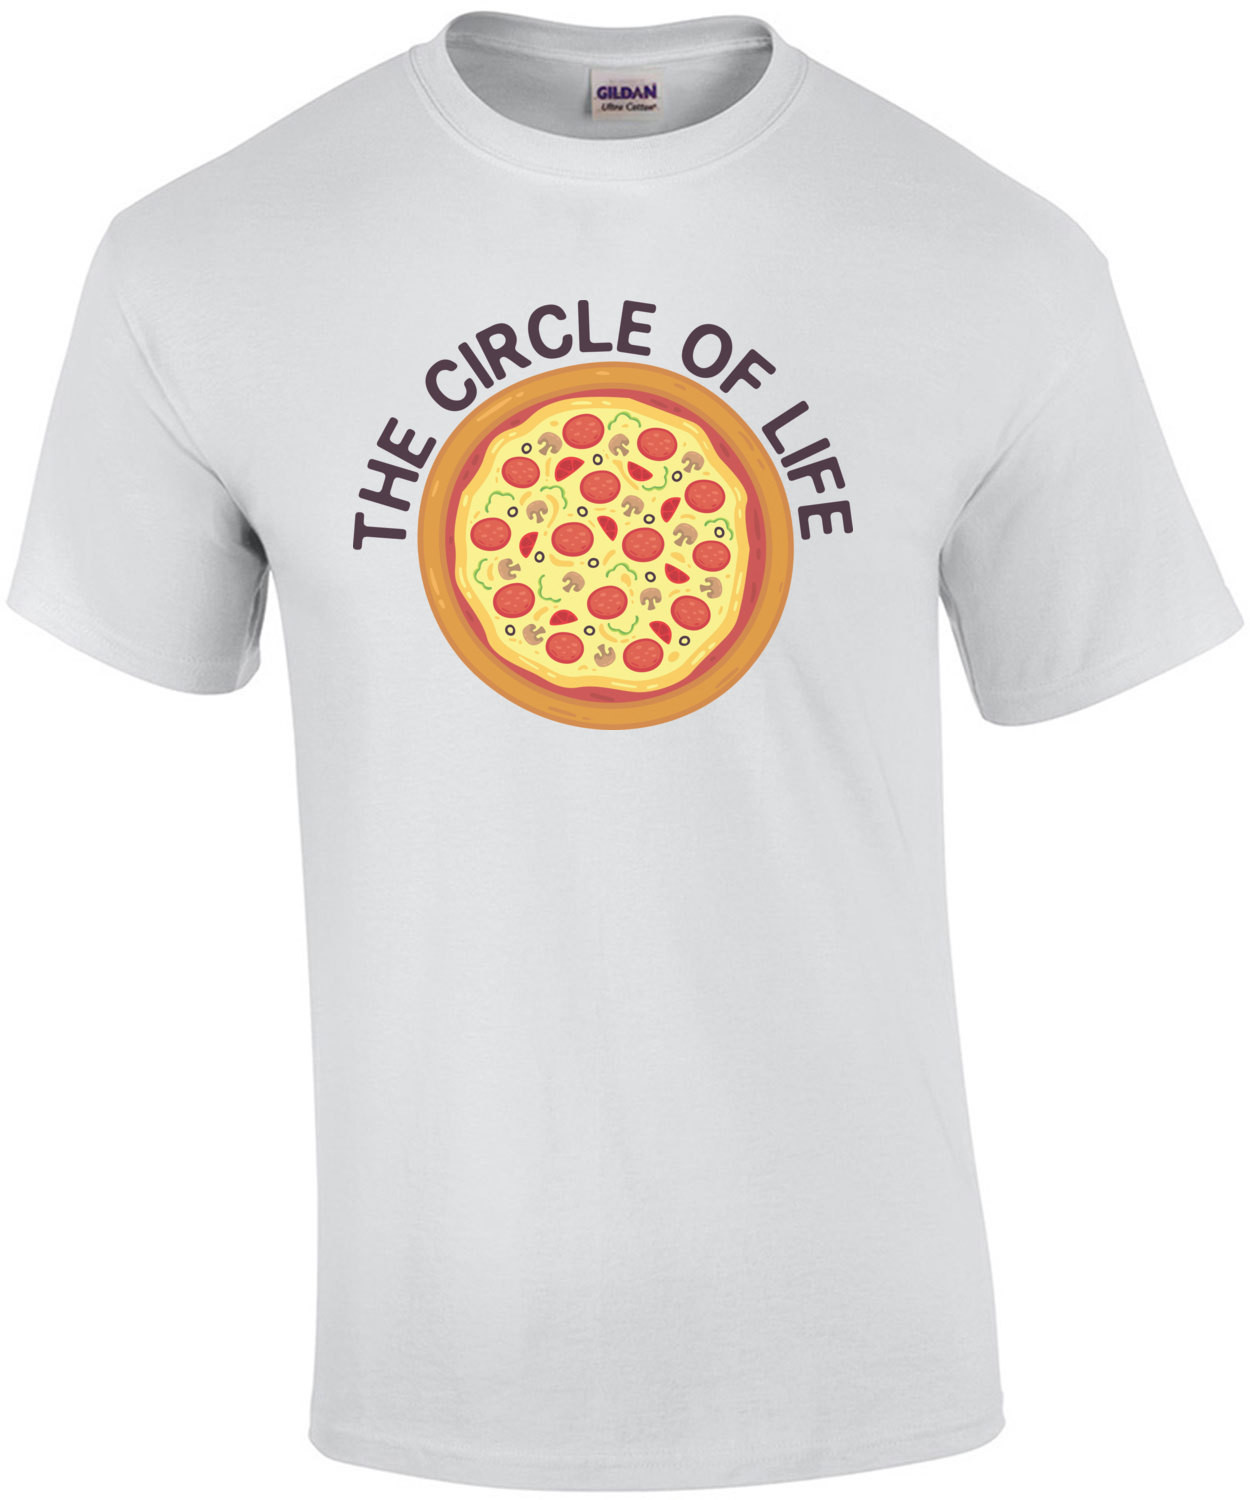 The Circle of Life - Funny T-Shirt